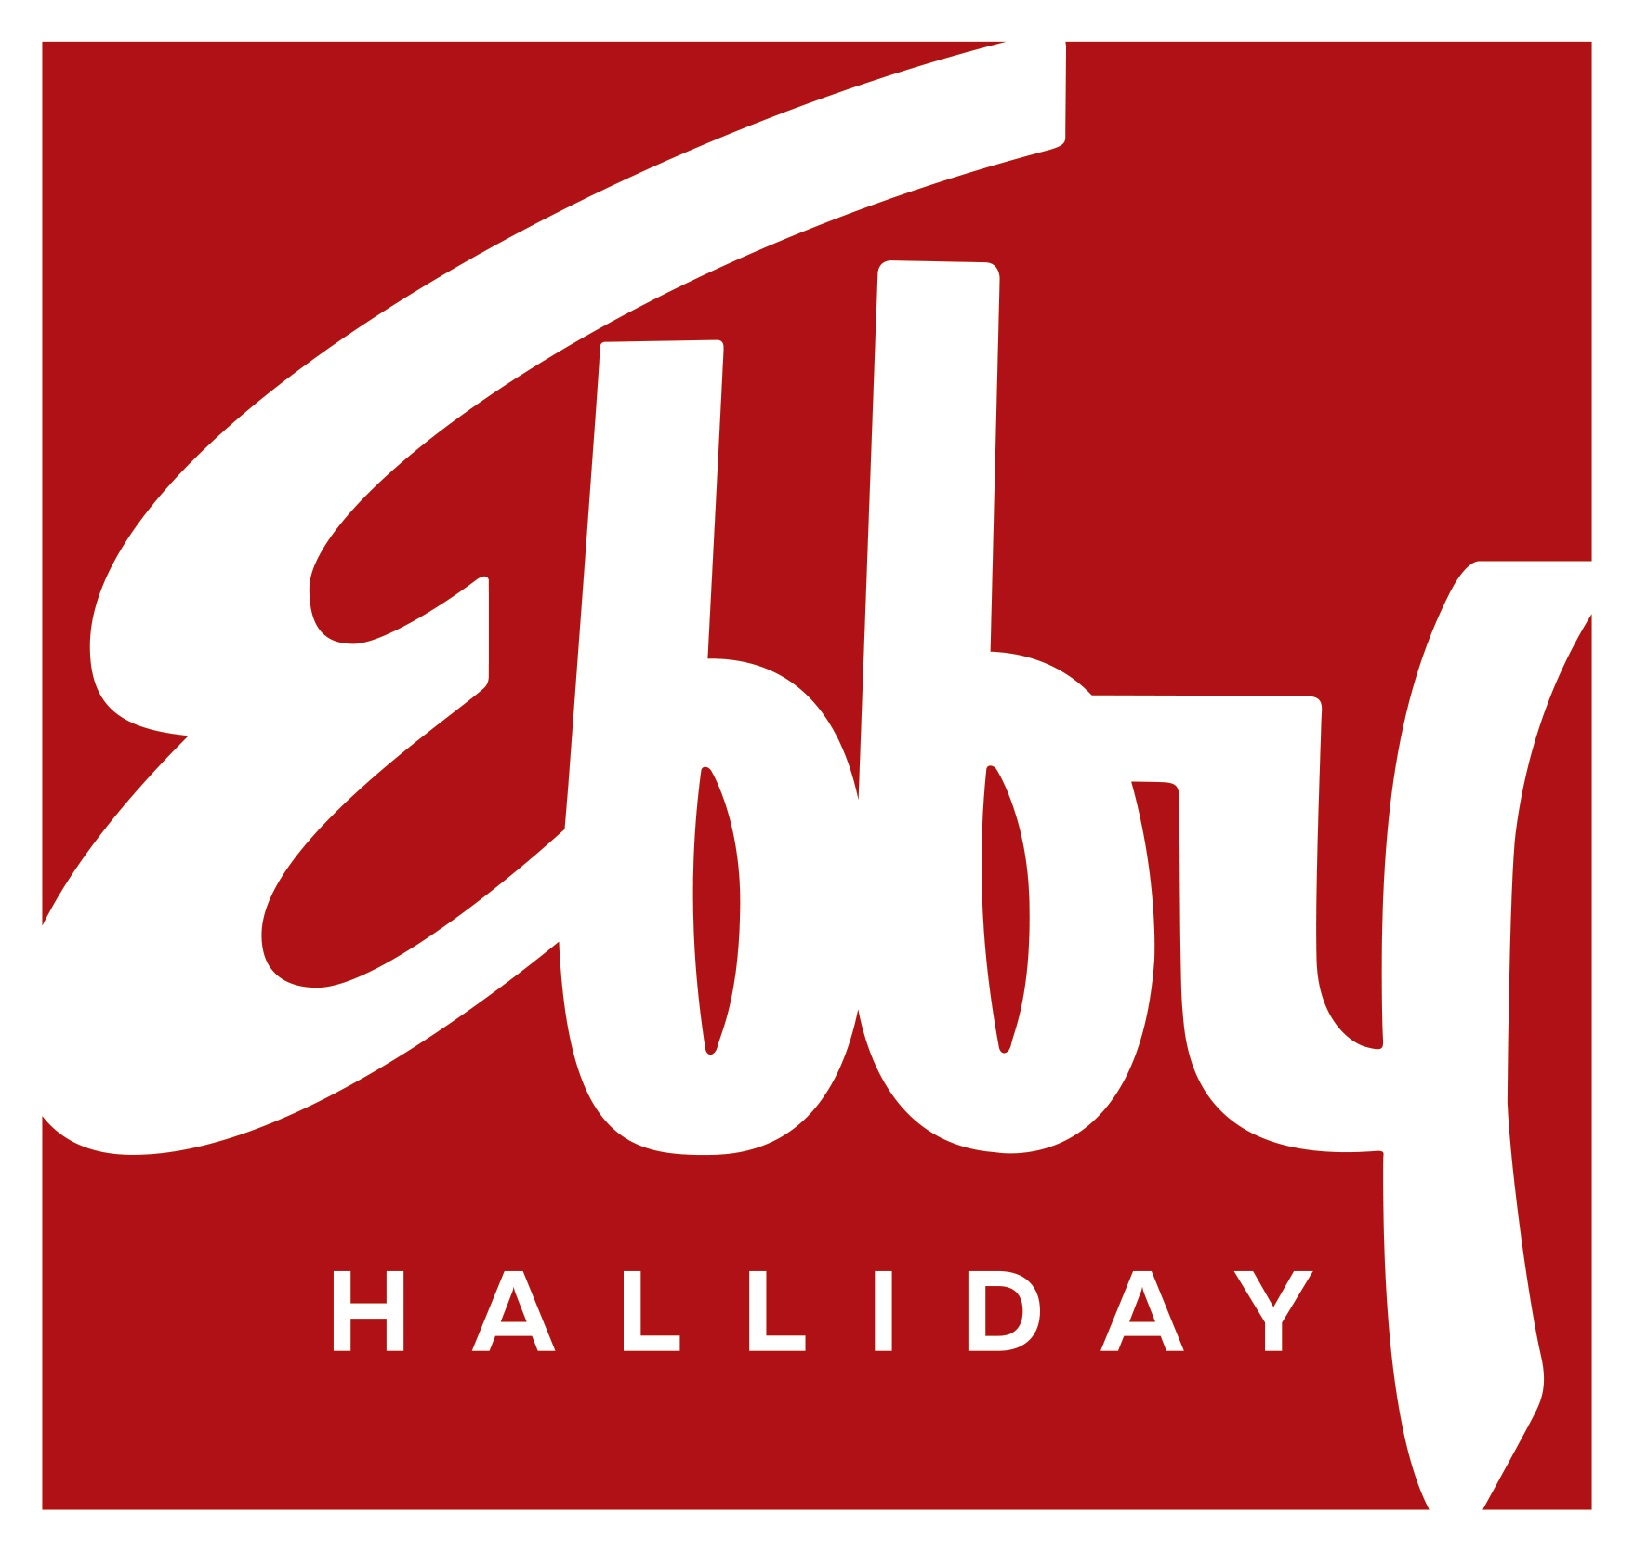 Ebby Halliday Customer Care